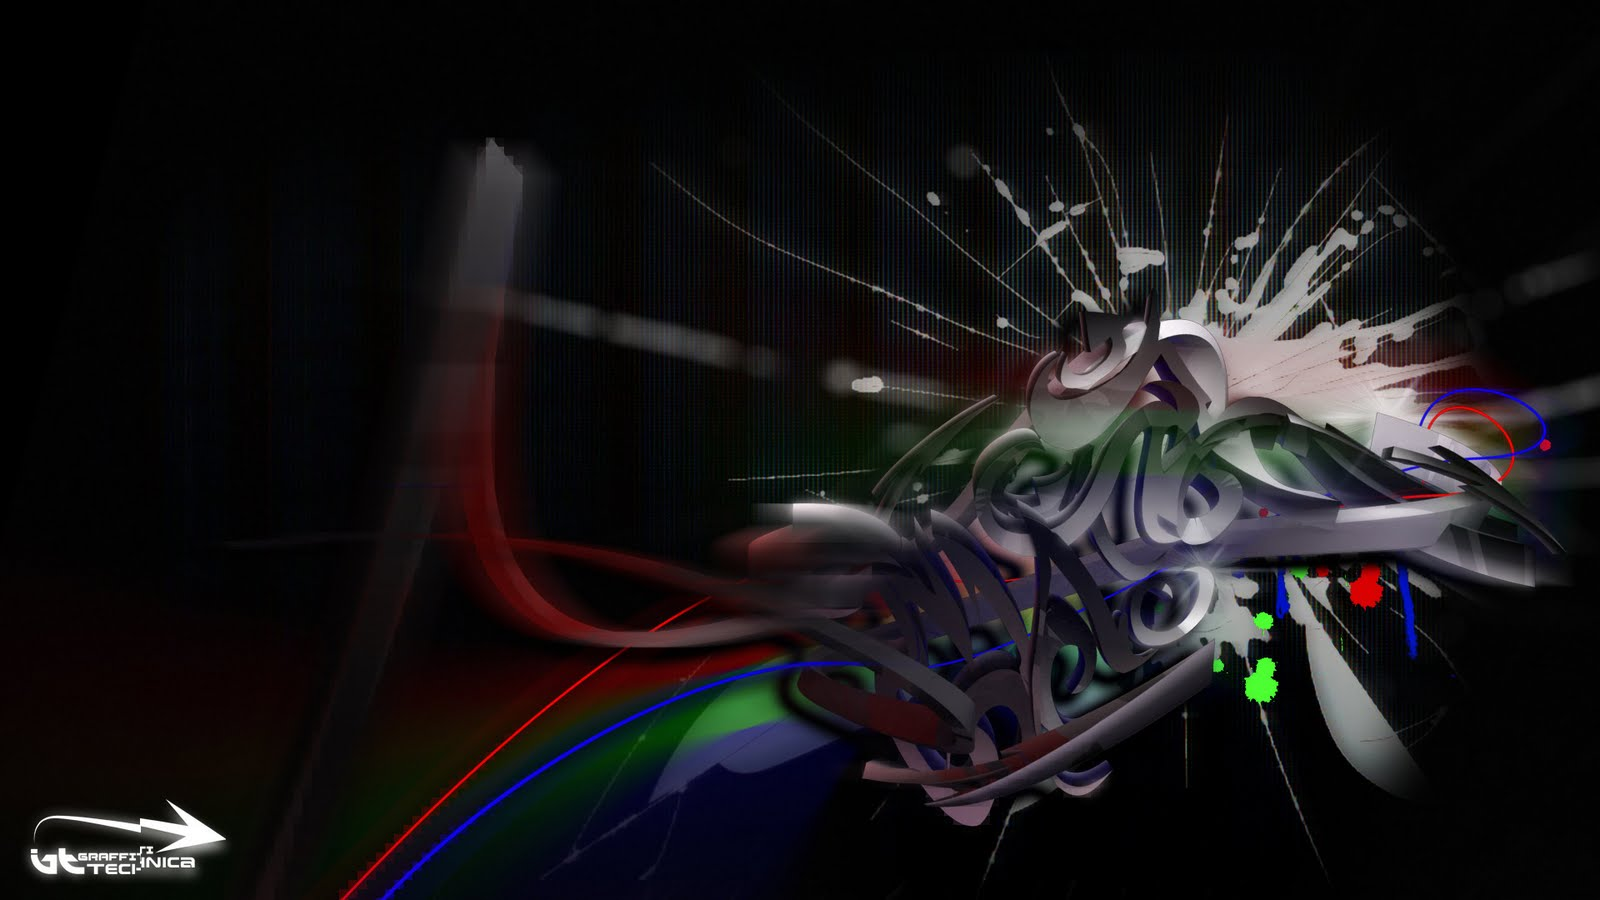 http://3.bp.blogspot.com/-ANxm_gkuX98/TlVaPiozFaI/AAAAAAAAAUA/l4wUvH6OmMI/s1600/widescreens-wallpaper.blogspot.com-3D_Graffiti_Wallpapers+%25282%2529.jpg